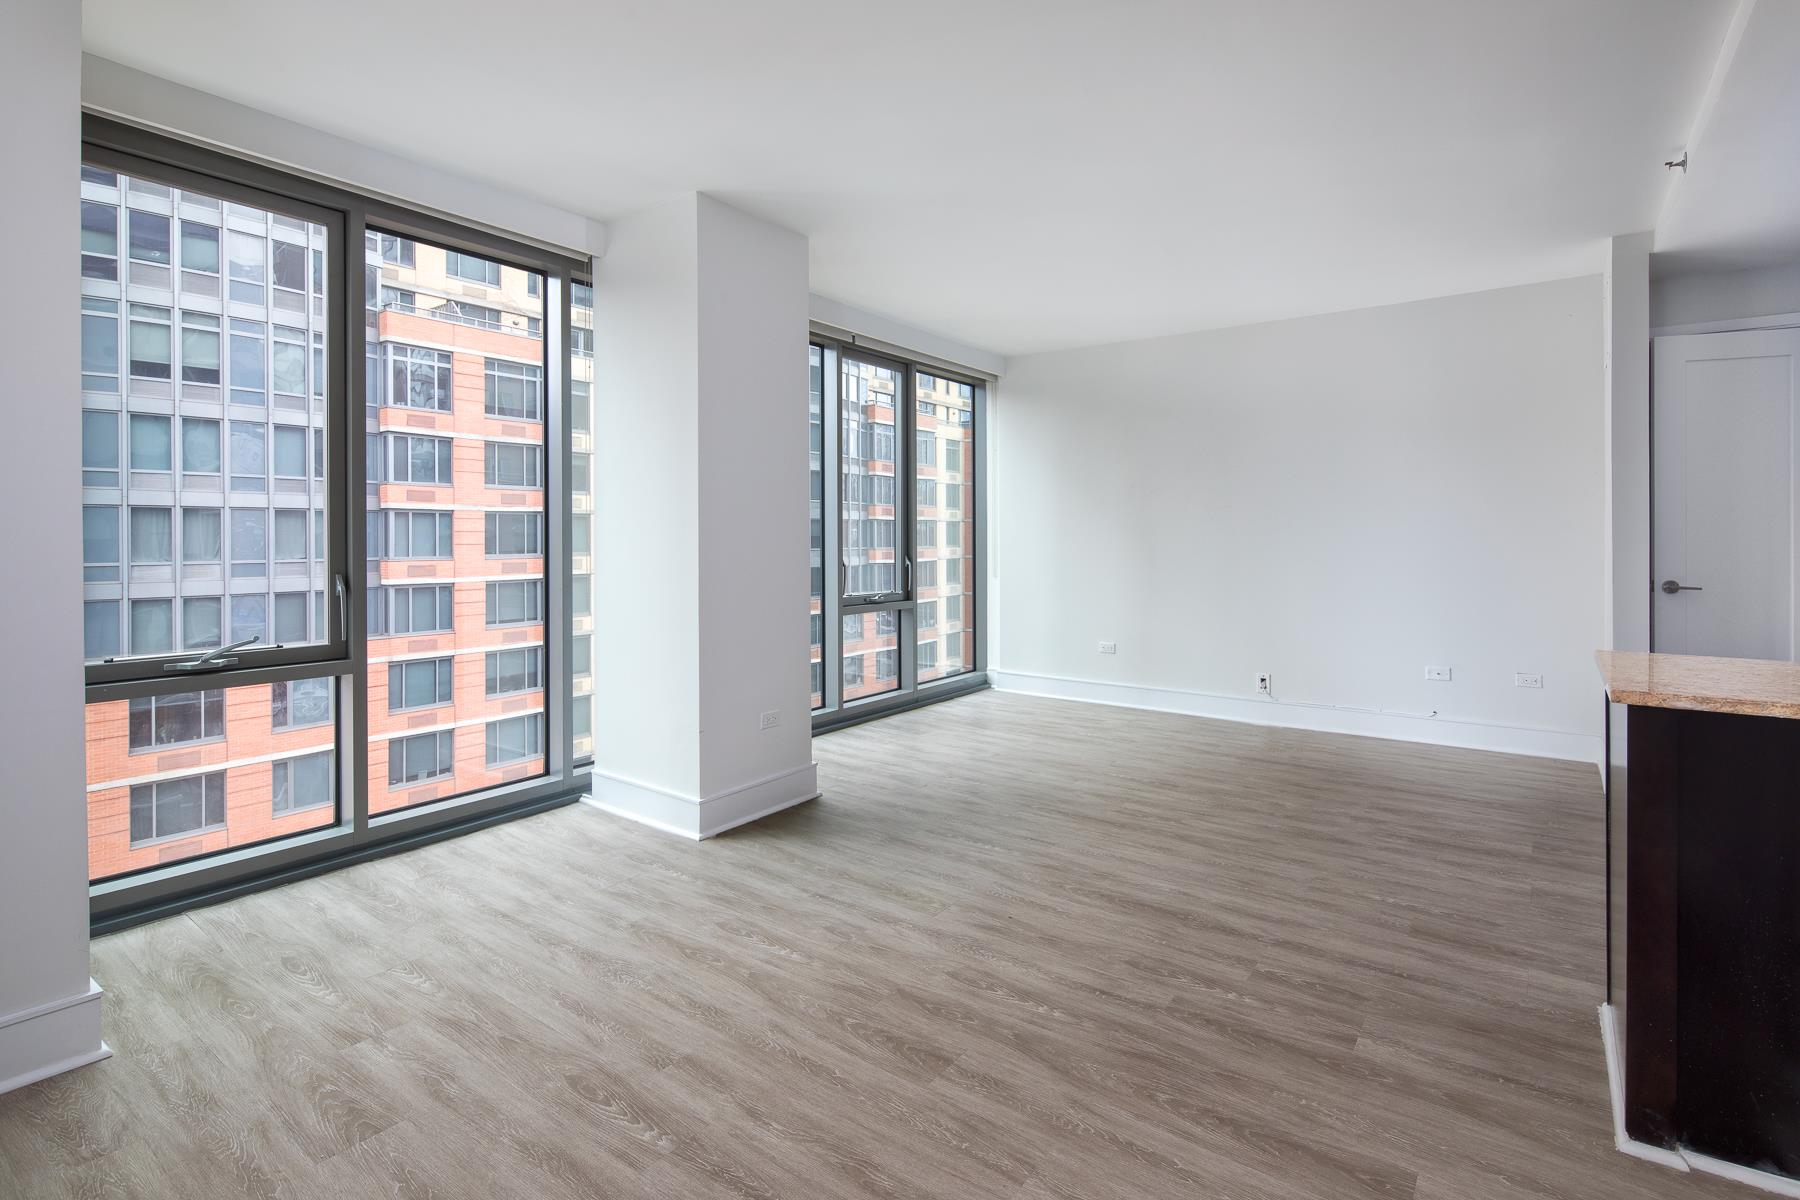 237 East 34th St, 1302 - Murray Hill, New York